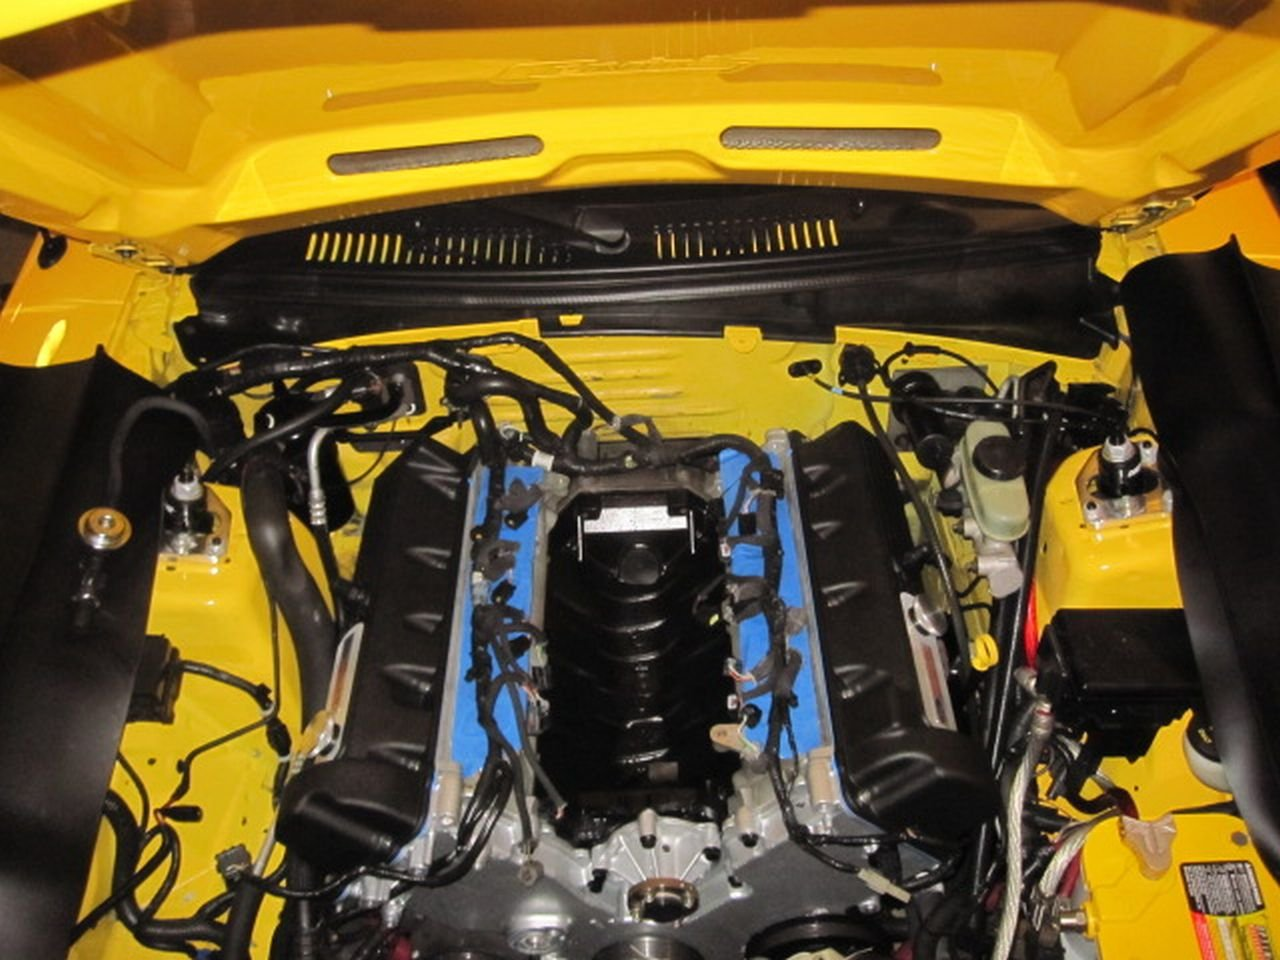 D Official Tork Tech Terminator Cobra M Supercharger Swap Thread Tork Tech Install Trick Flow Valve Covers Valve